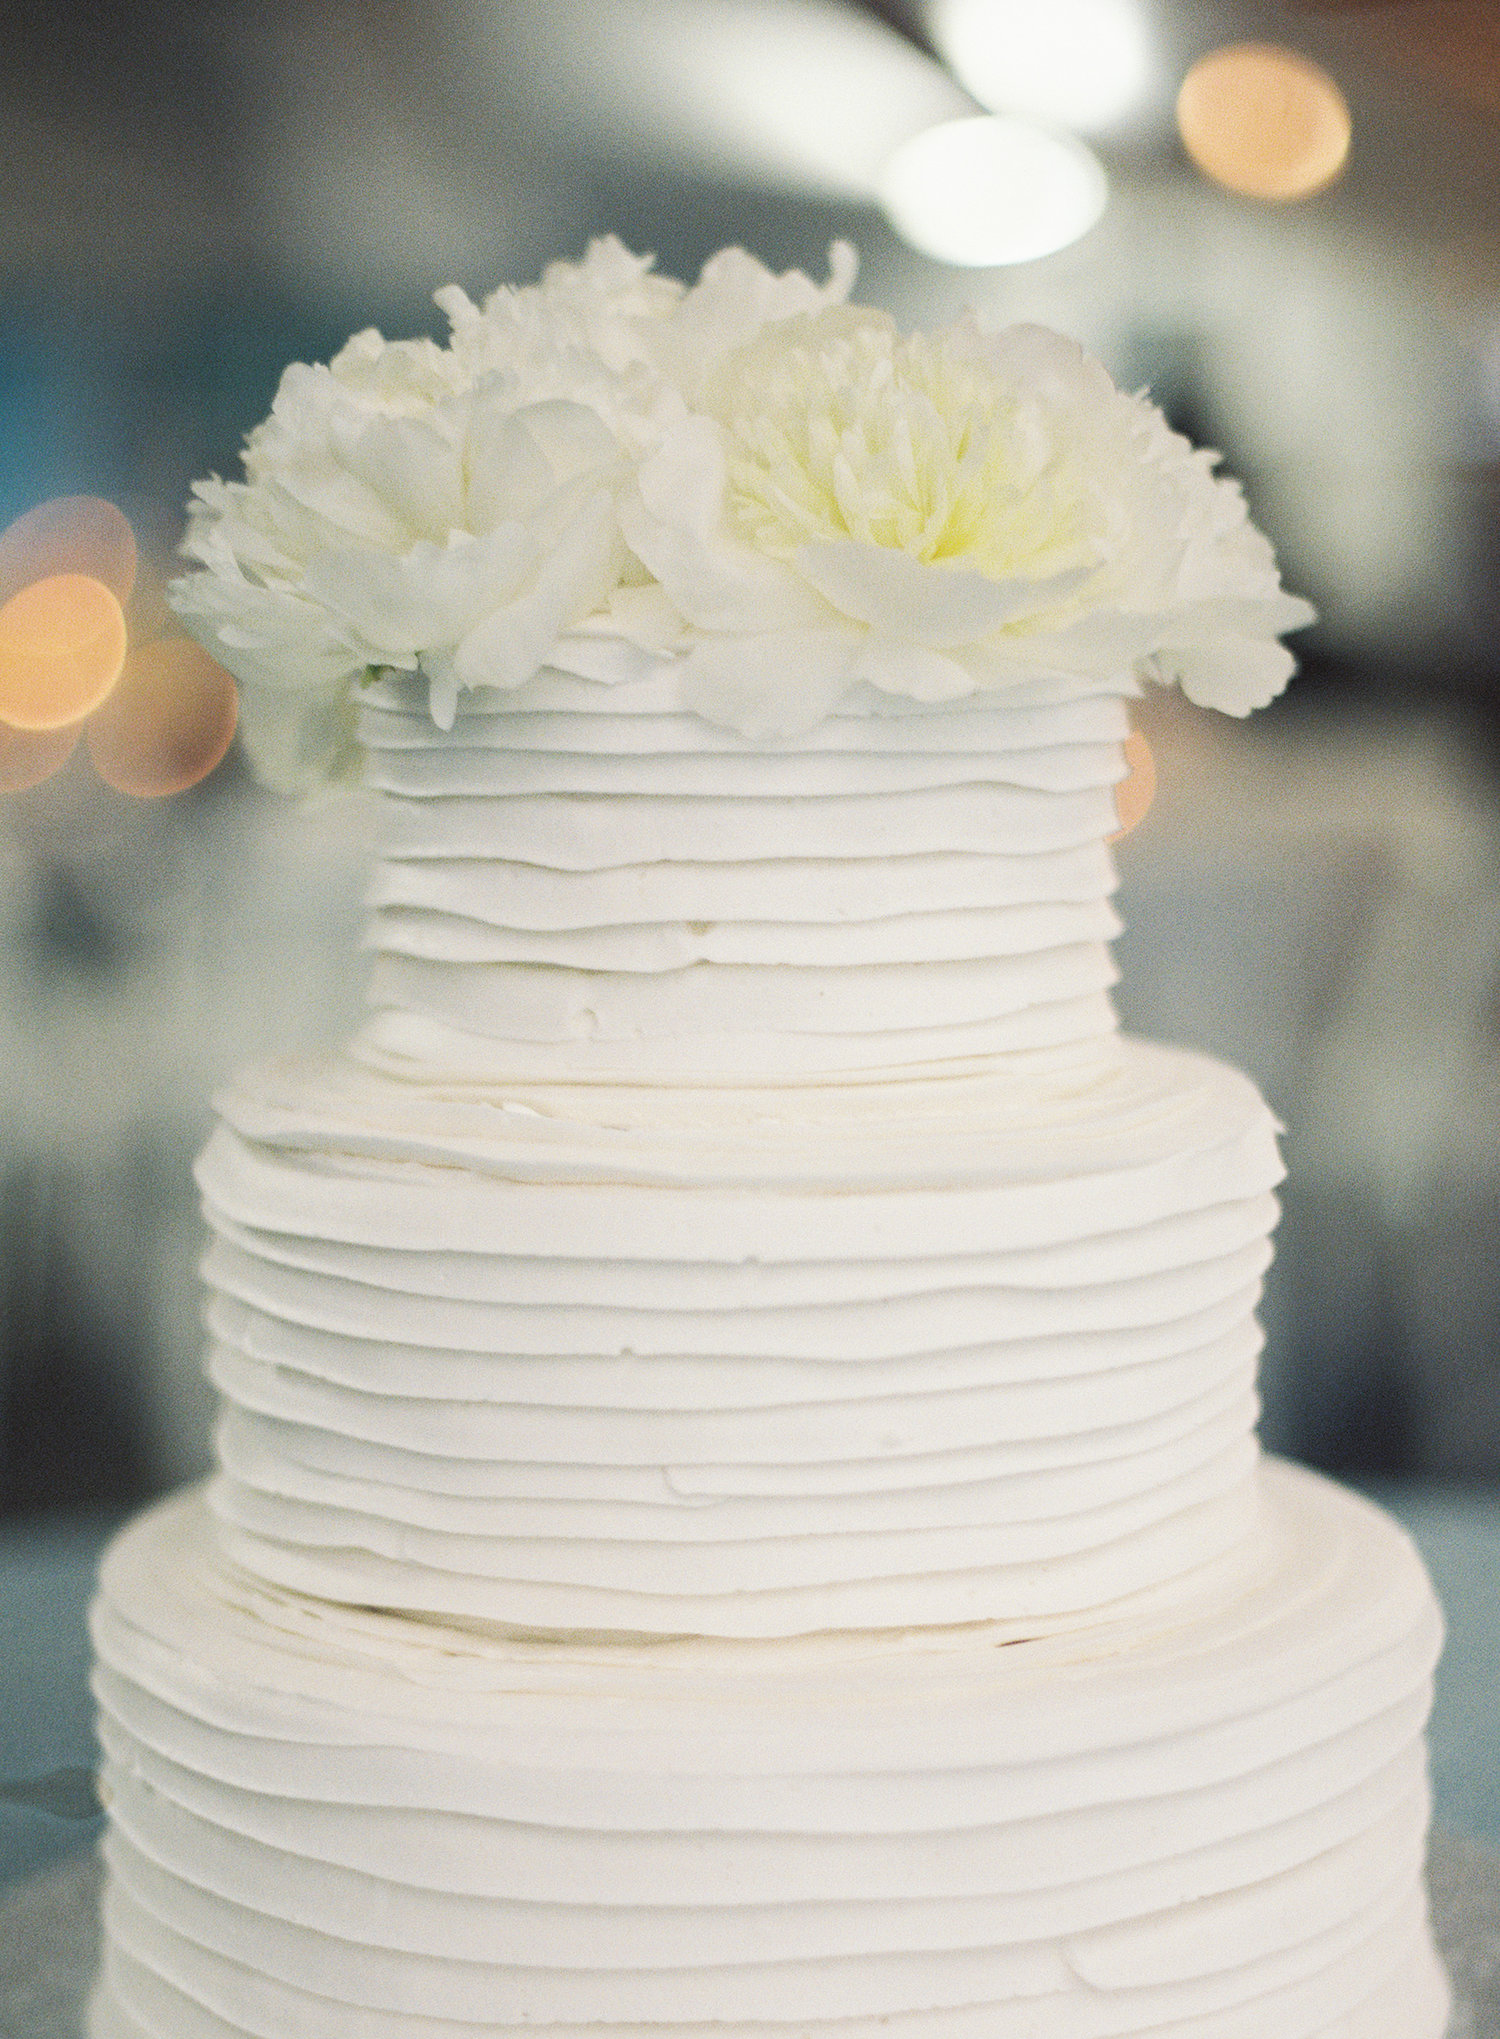 3 tier white cake with white flowers on the top of the cake